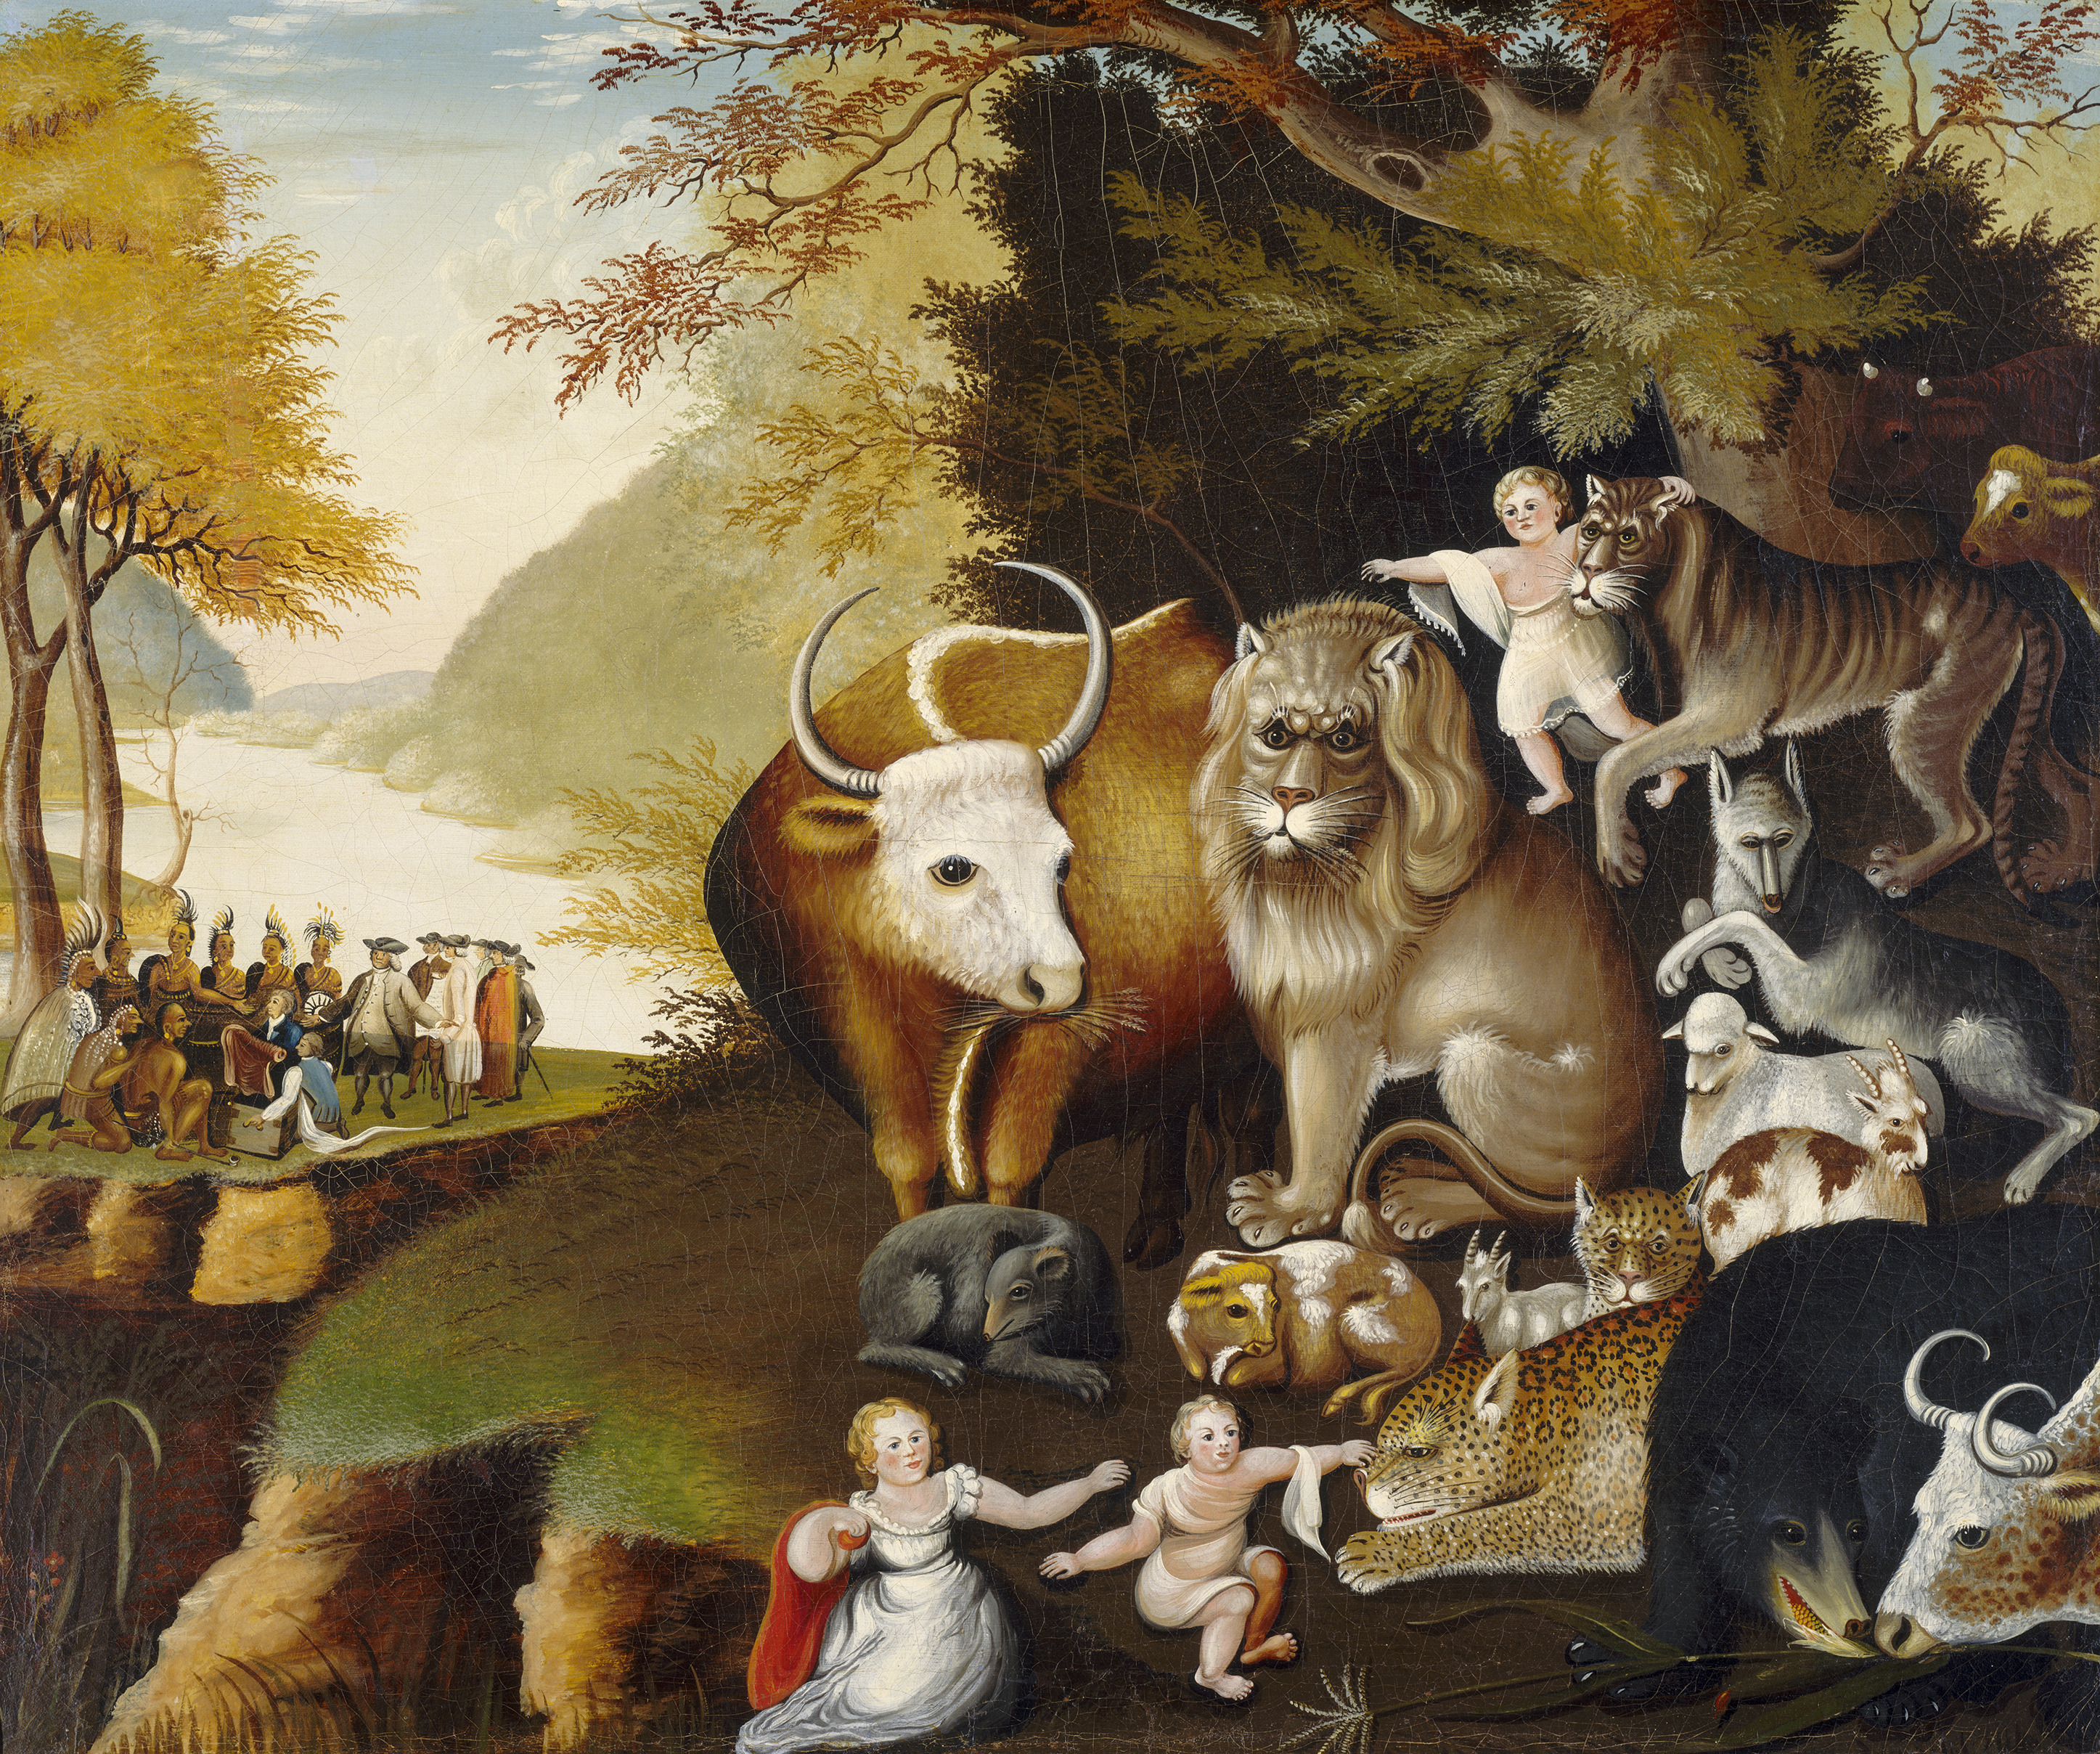 hicks peaceable kingdom essays Peaceable kingdom painter by edward hicks textual analysis essay, the topic is peaceable kingdom painter instructions: read your textual analysis rough draft and.